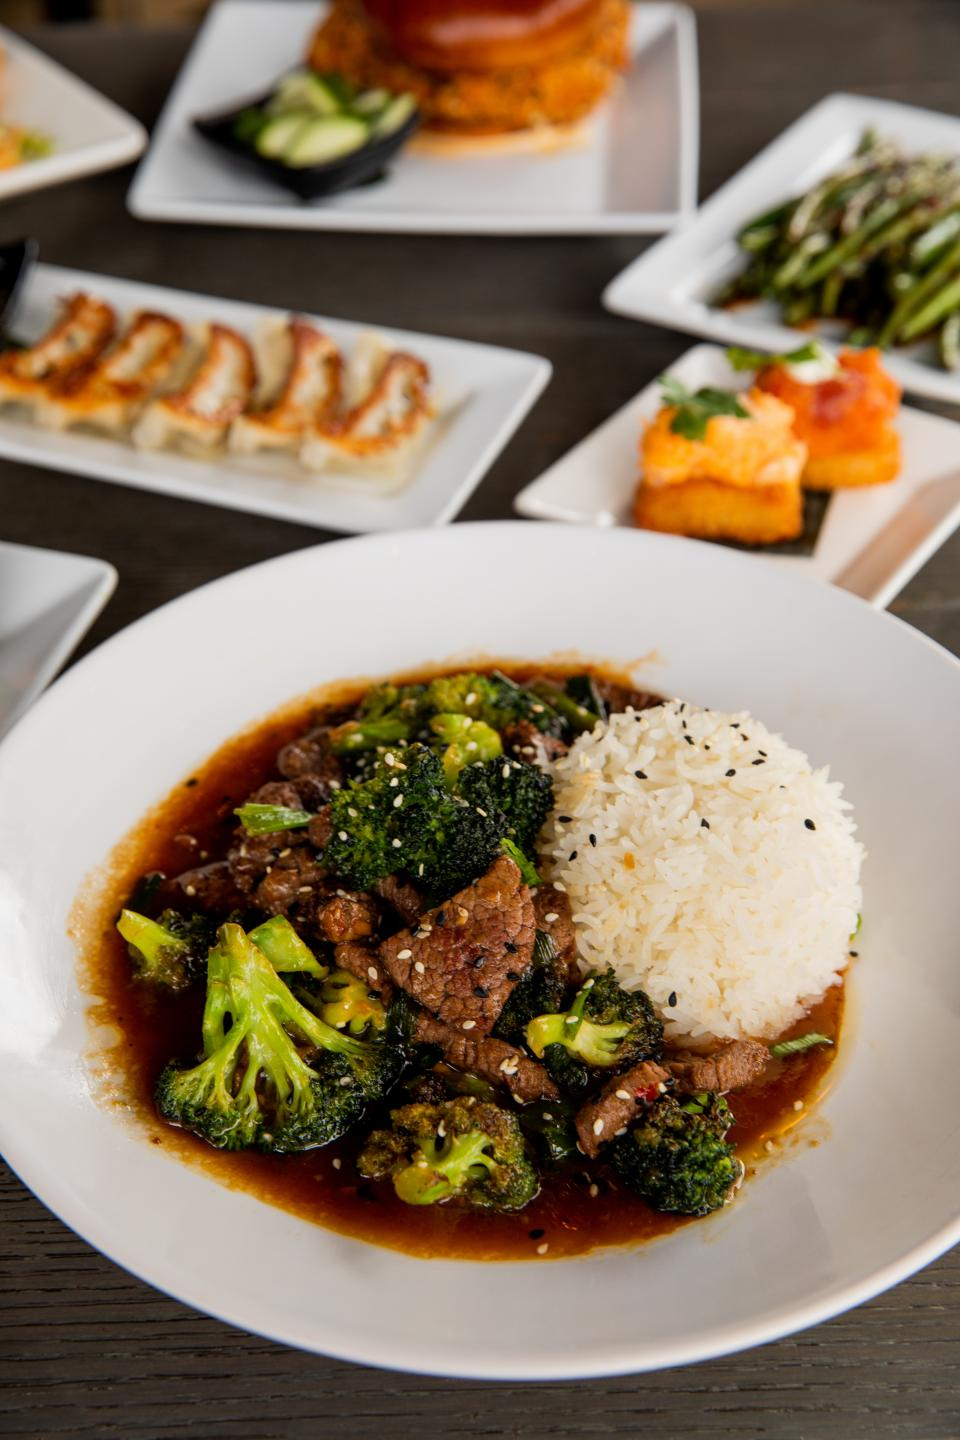 Tokio Pub Beef and Broccoli